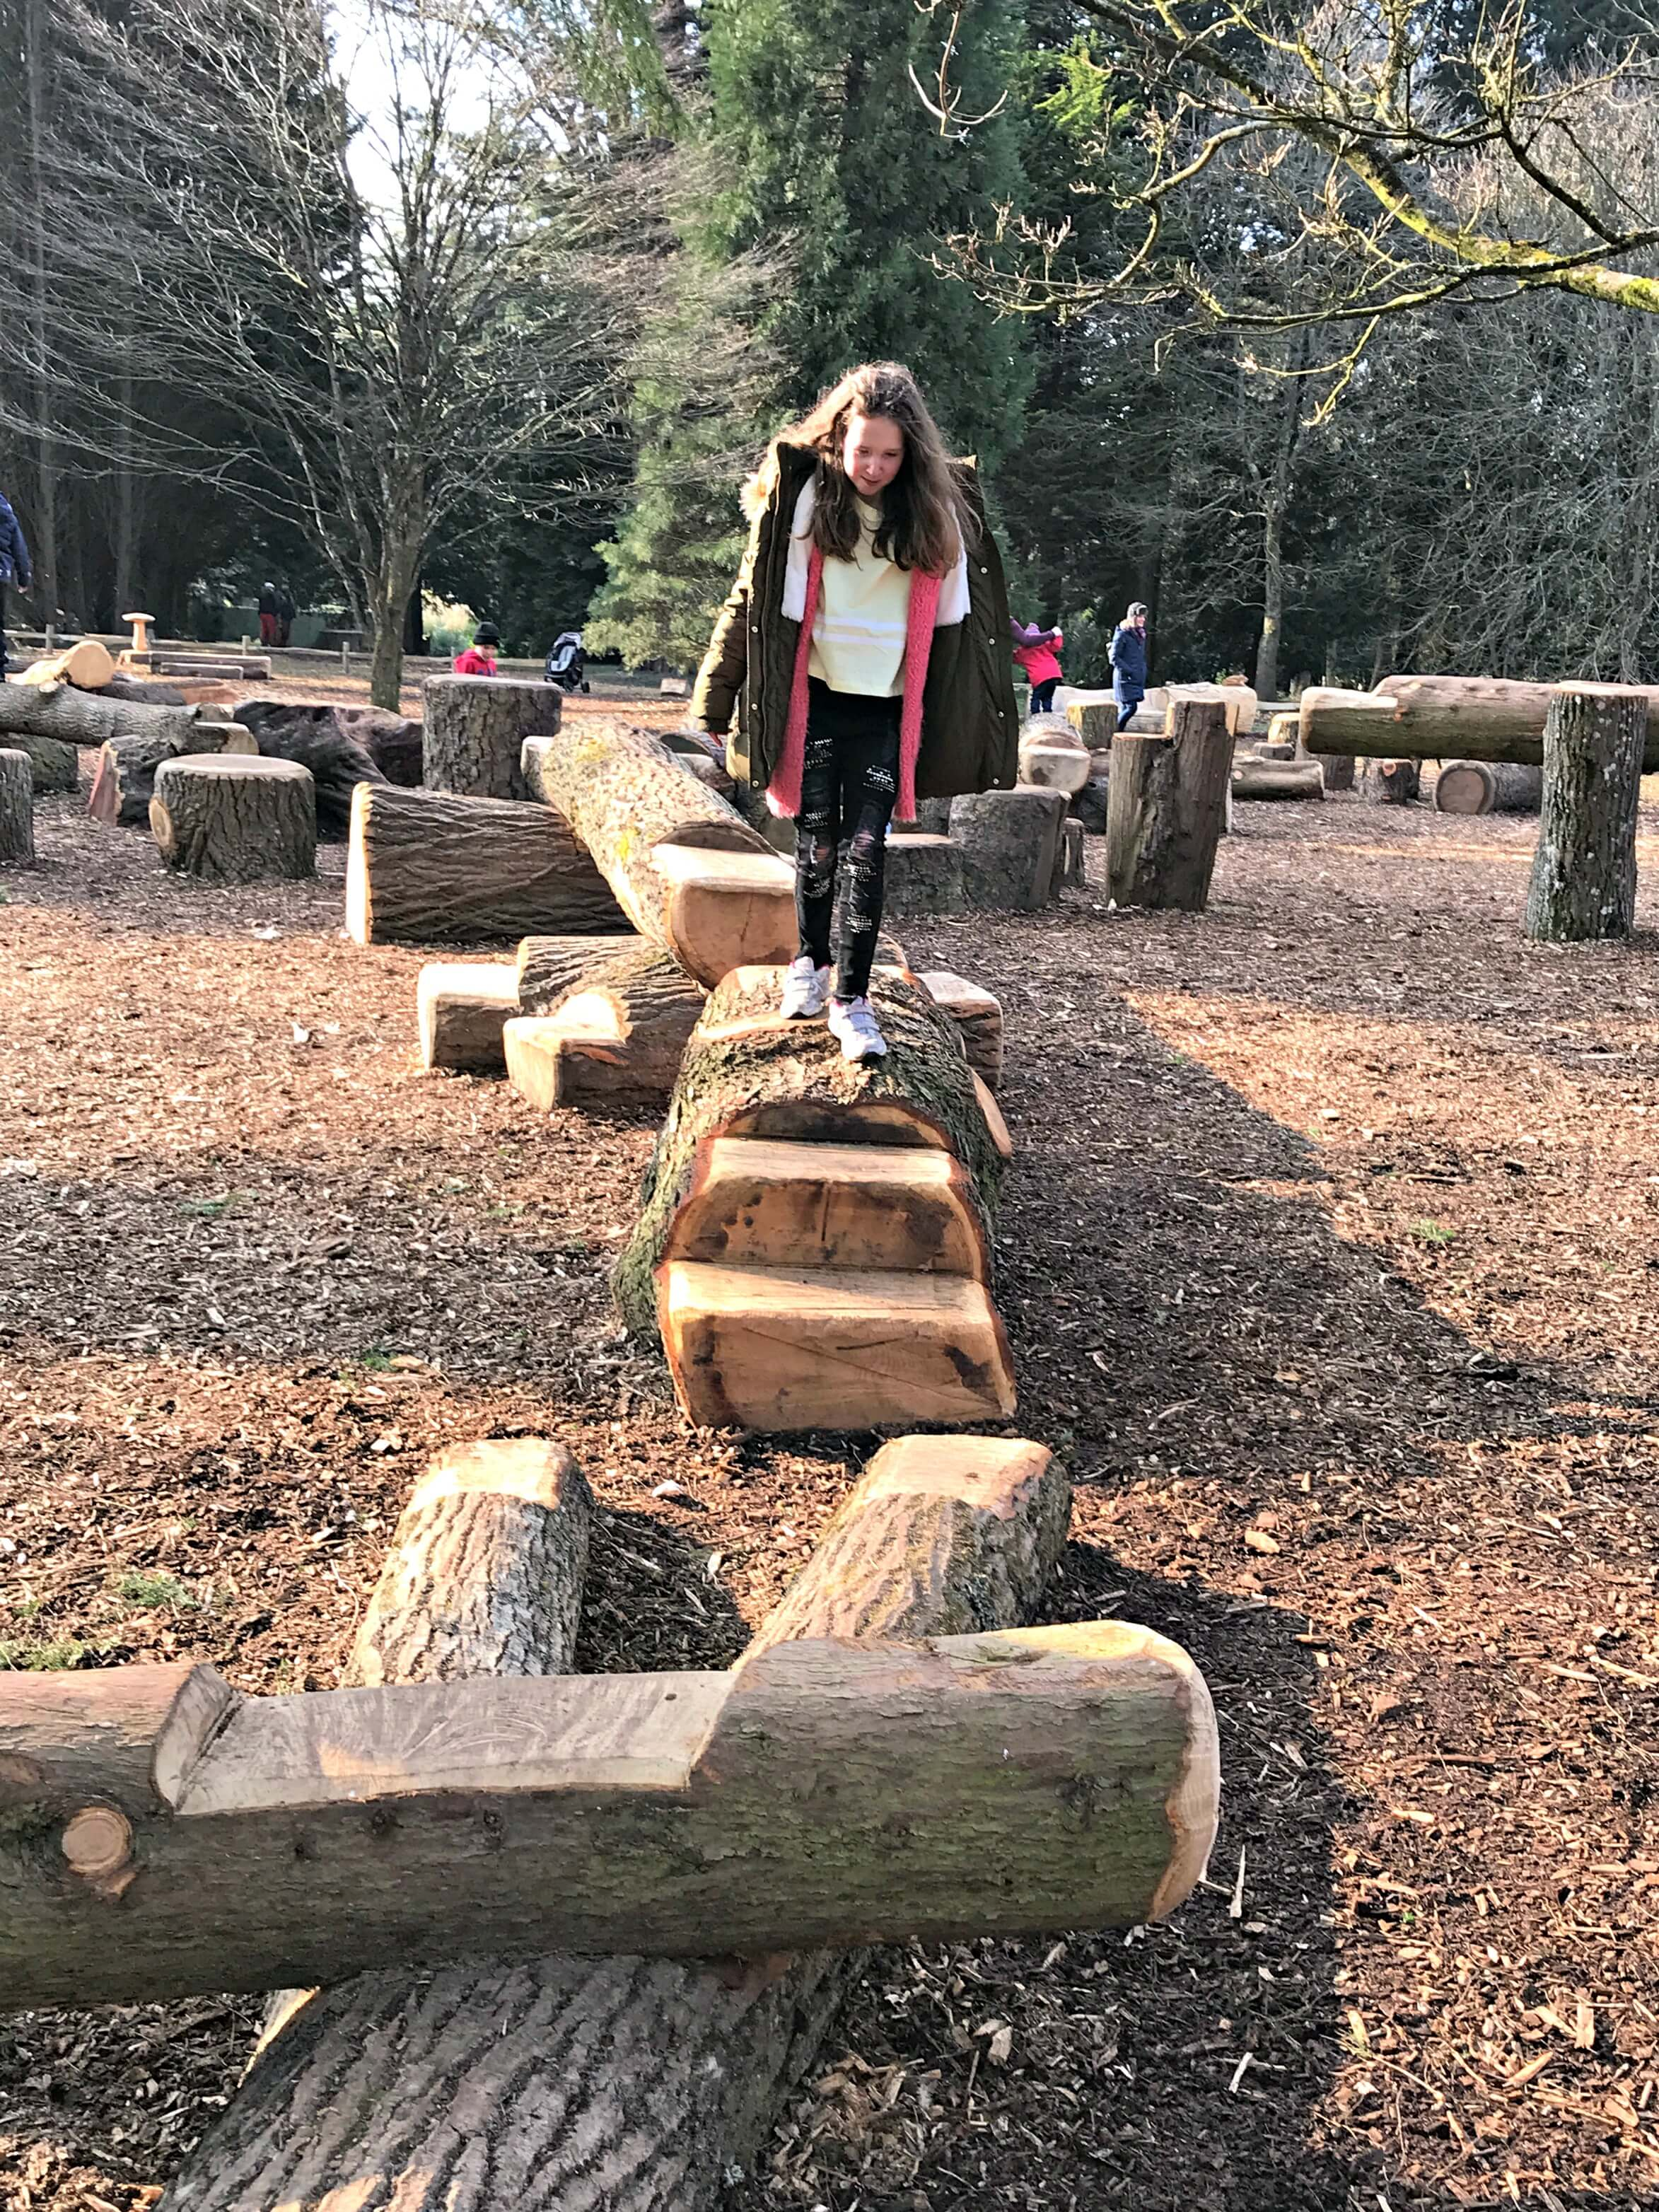 New wooded play area at Dyffryn Garden. Caitlin explores on her Oreo Cookie Quest